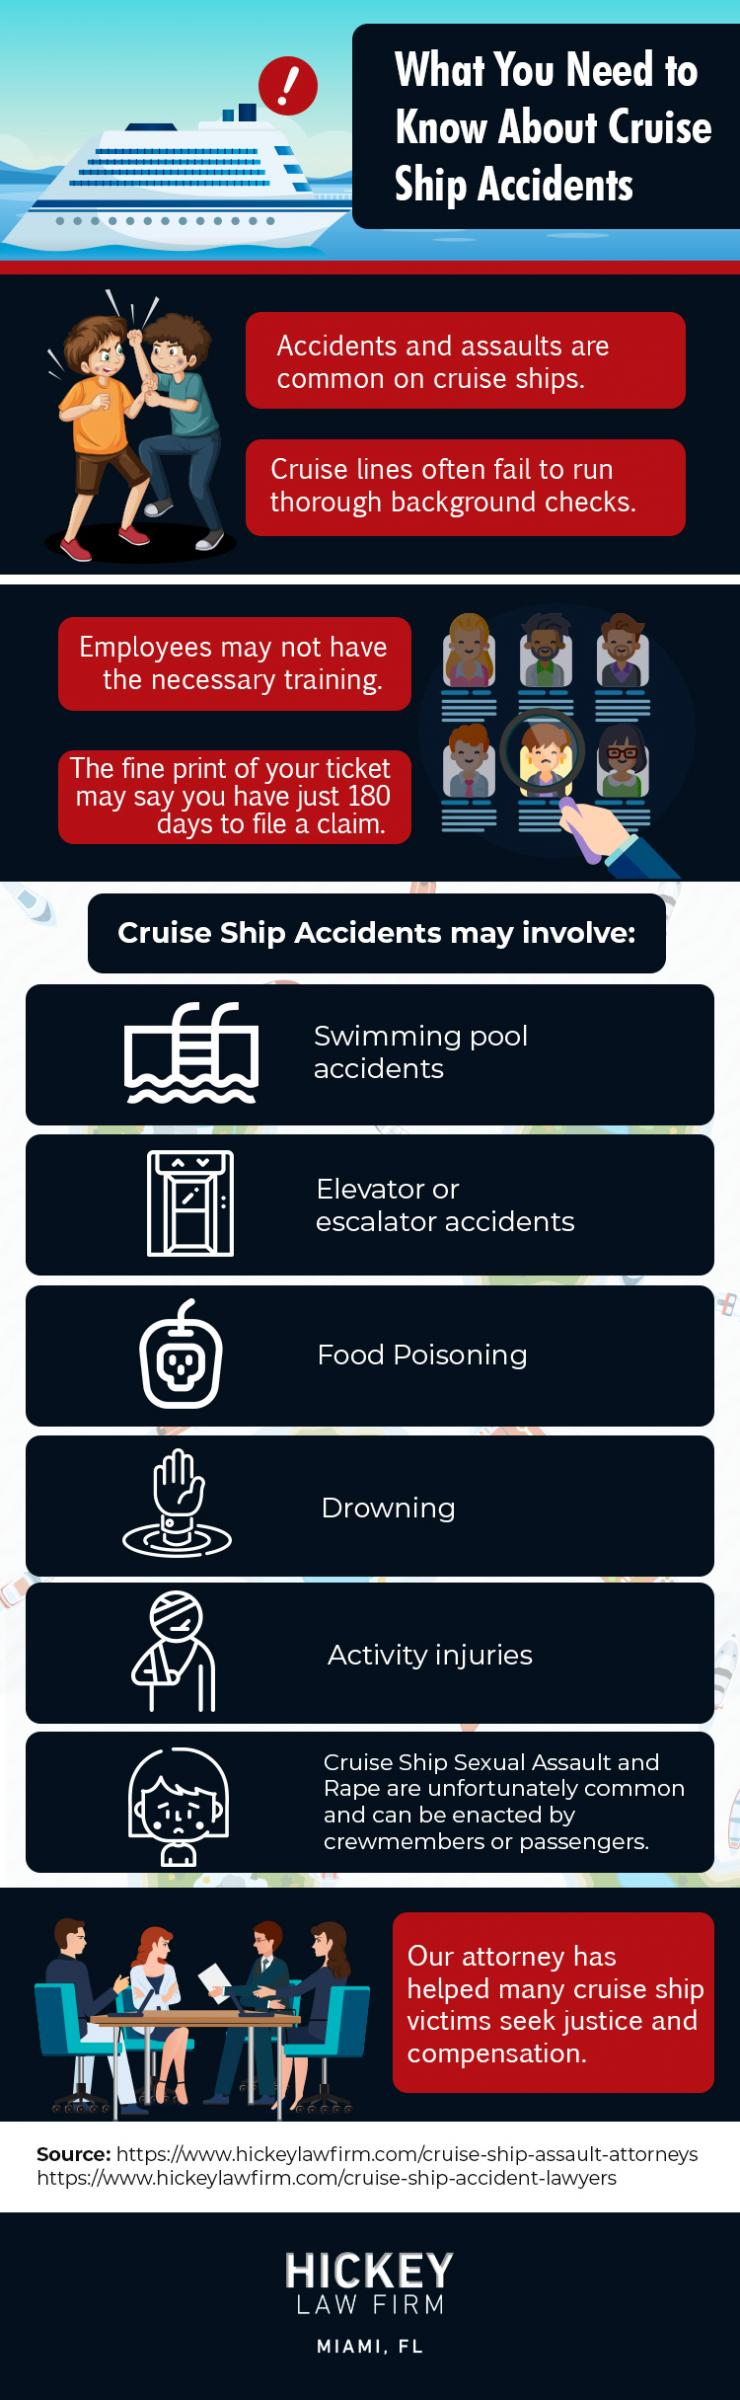 Miami Attorneys outline what you need to know about cruise ship accidents.